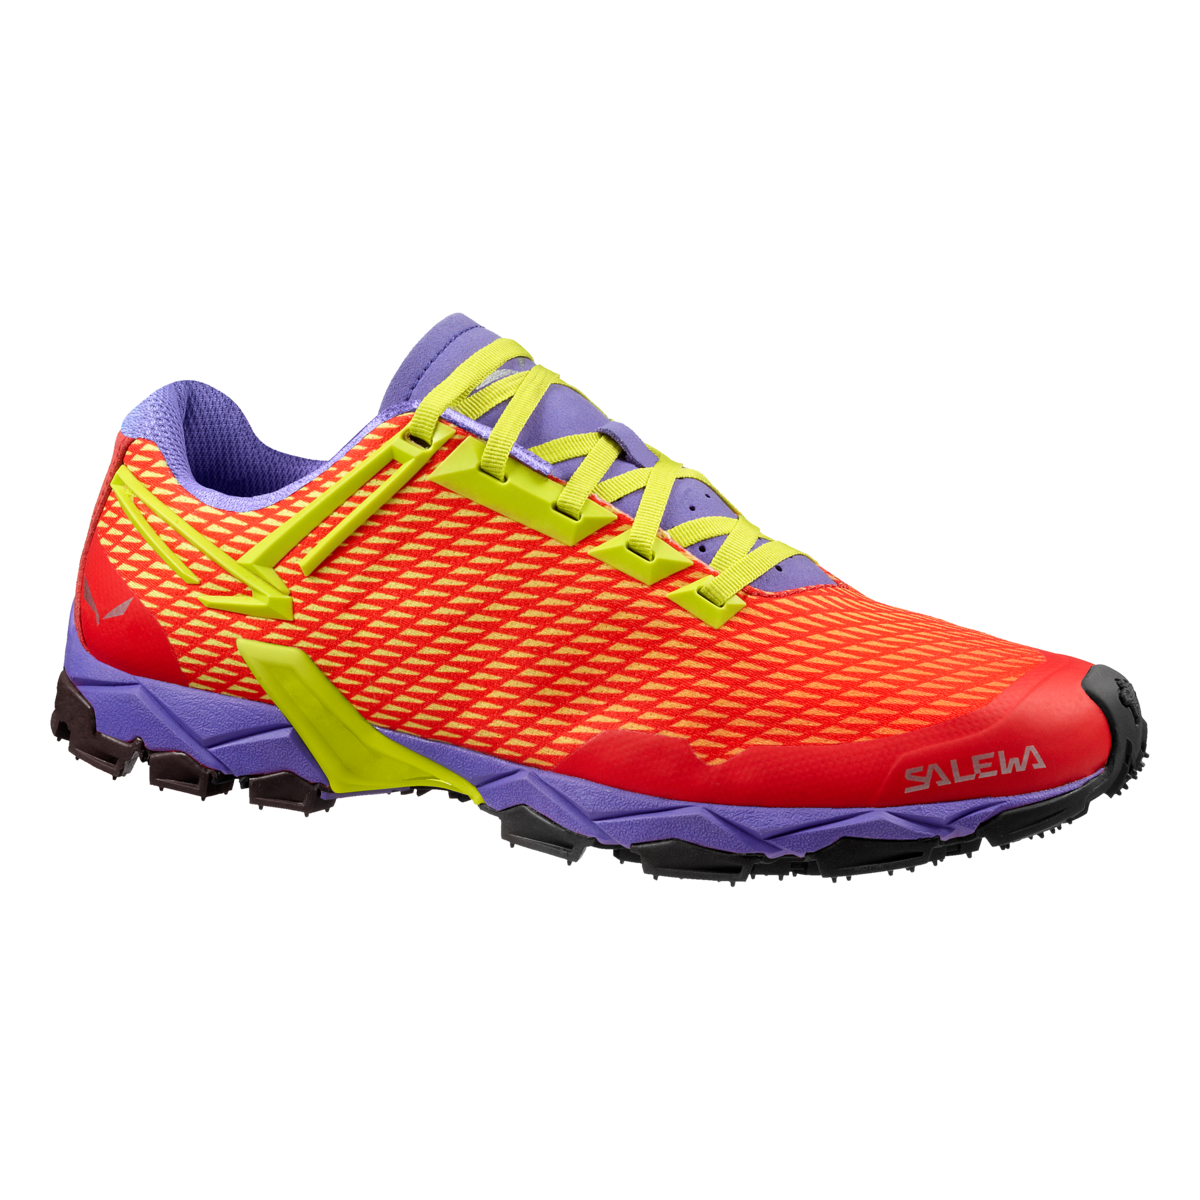 542f5ad88a SALEWA WS Lite Train Hot Coral Citro